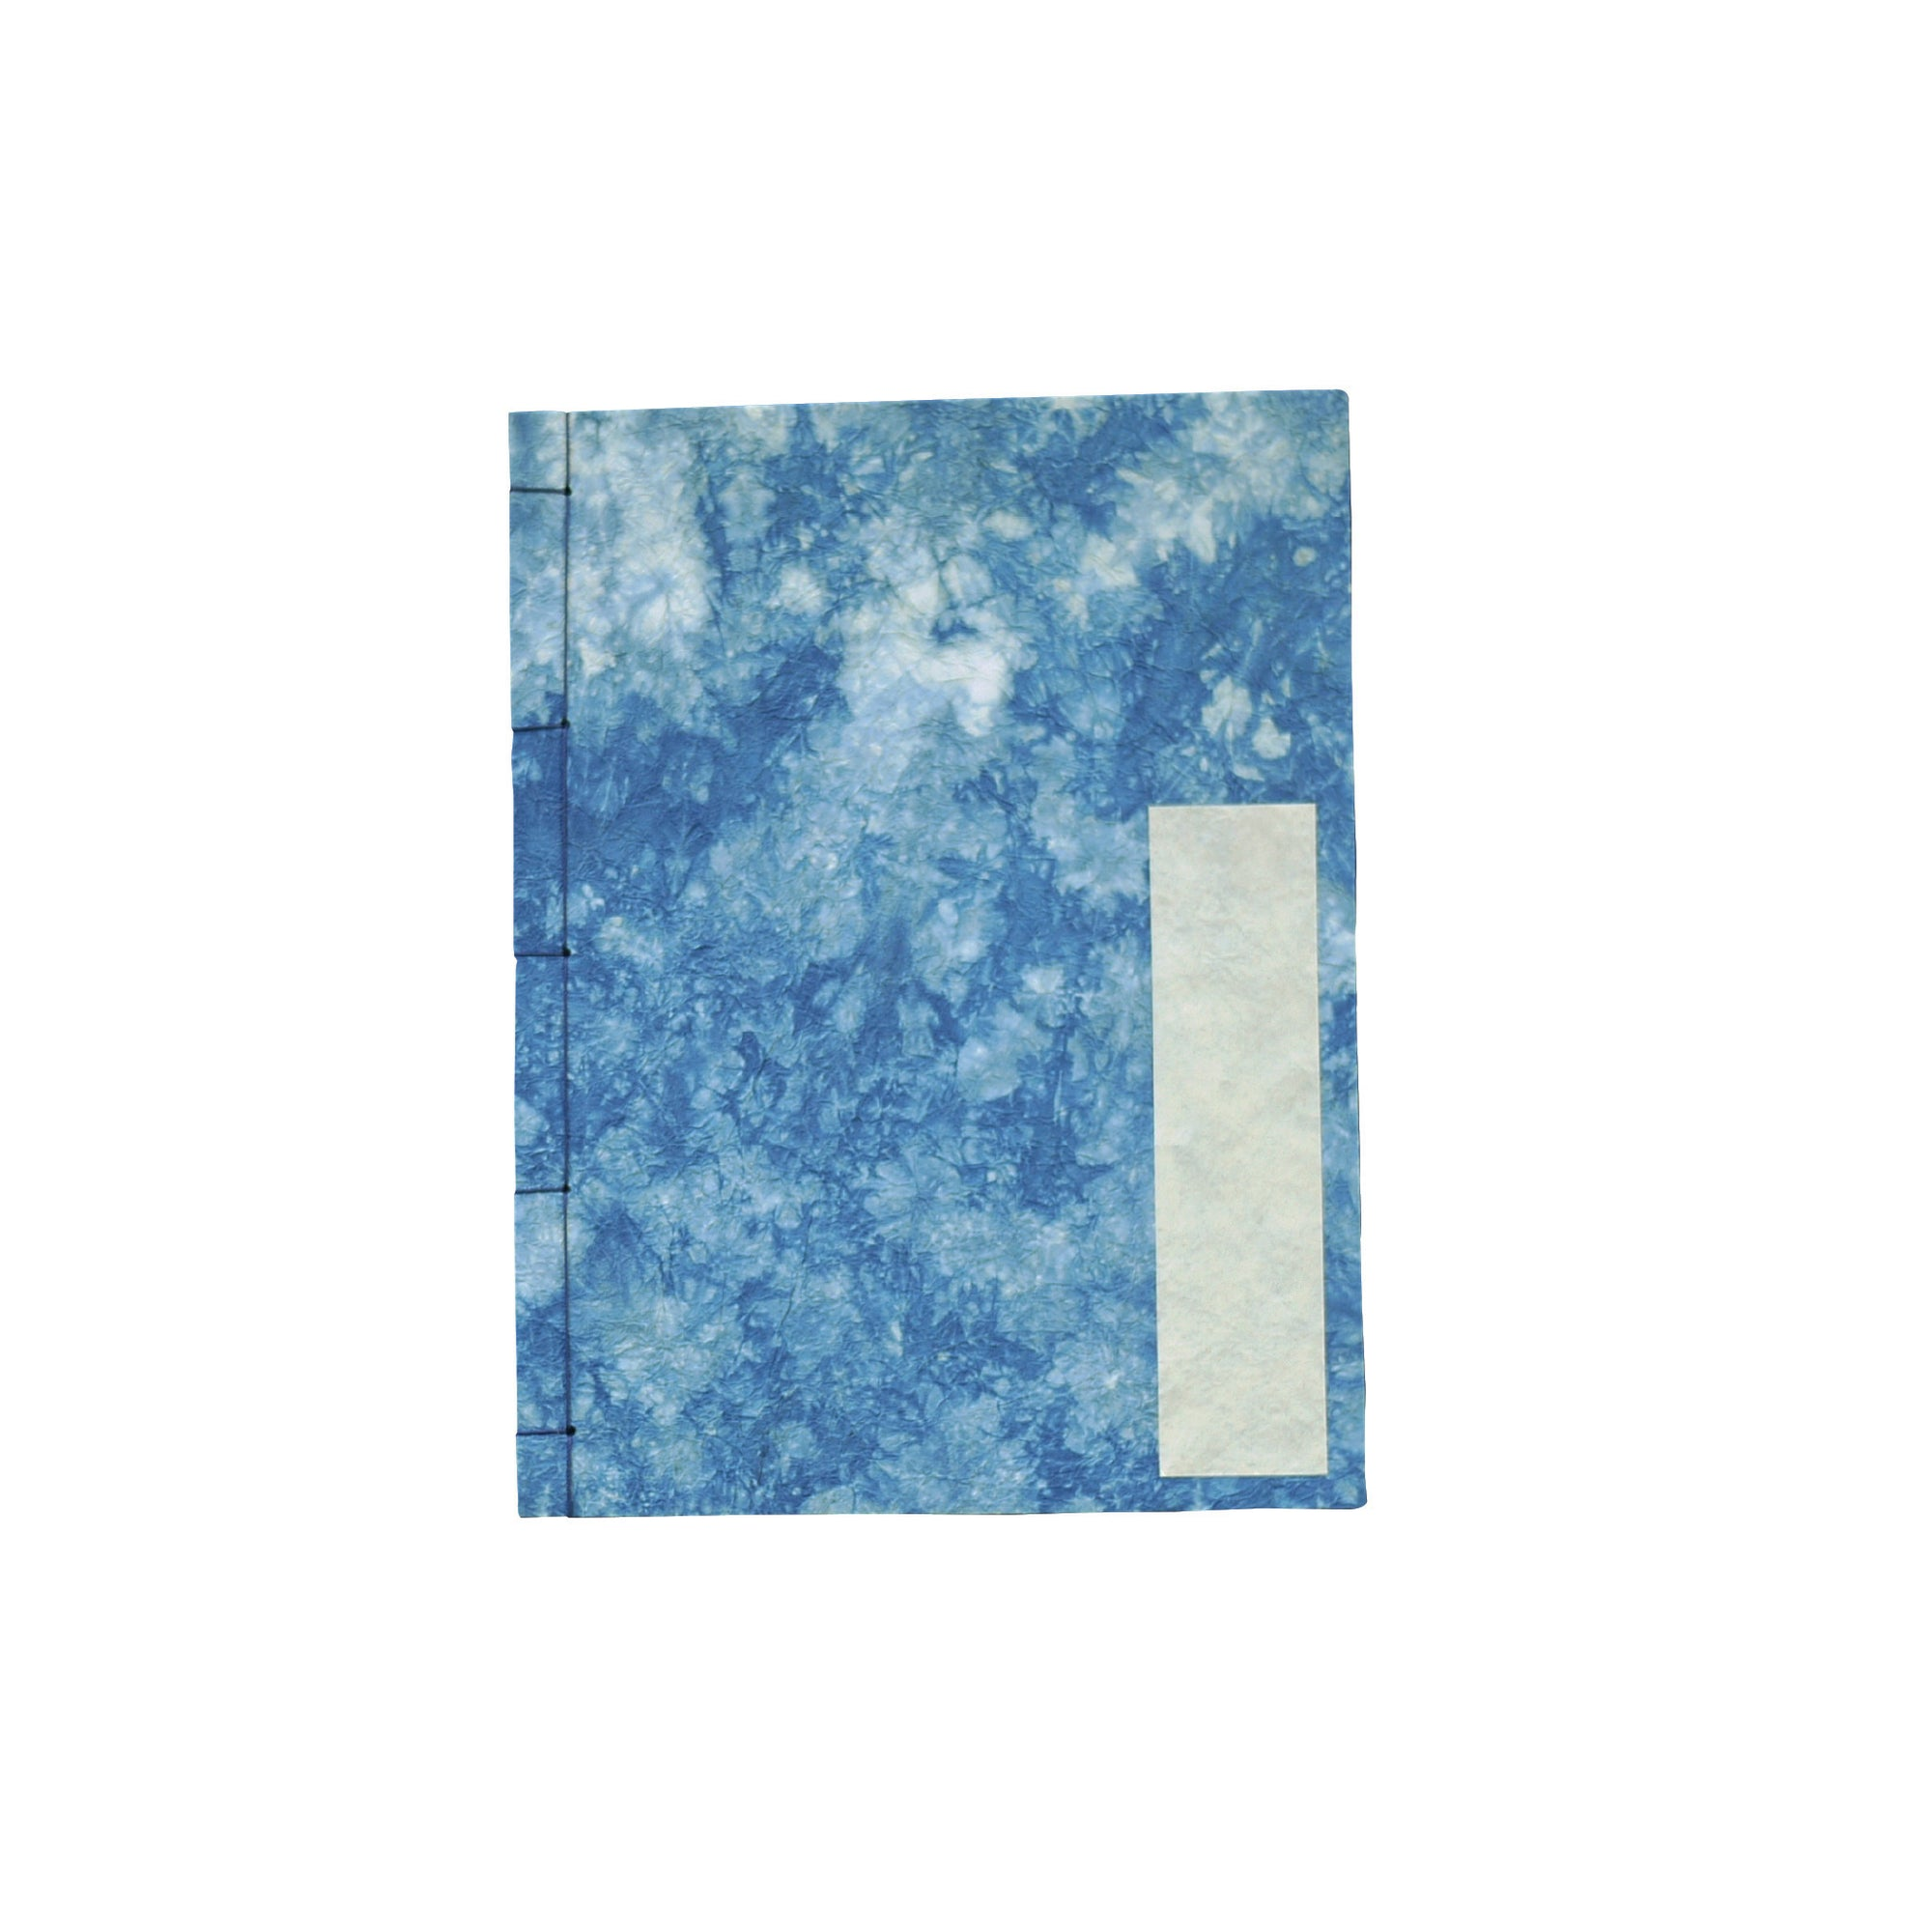 Hand-dyed Japanese Shibori Notebook